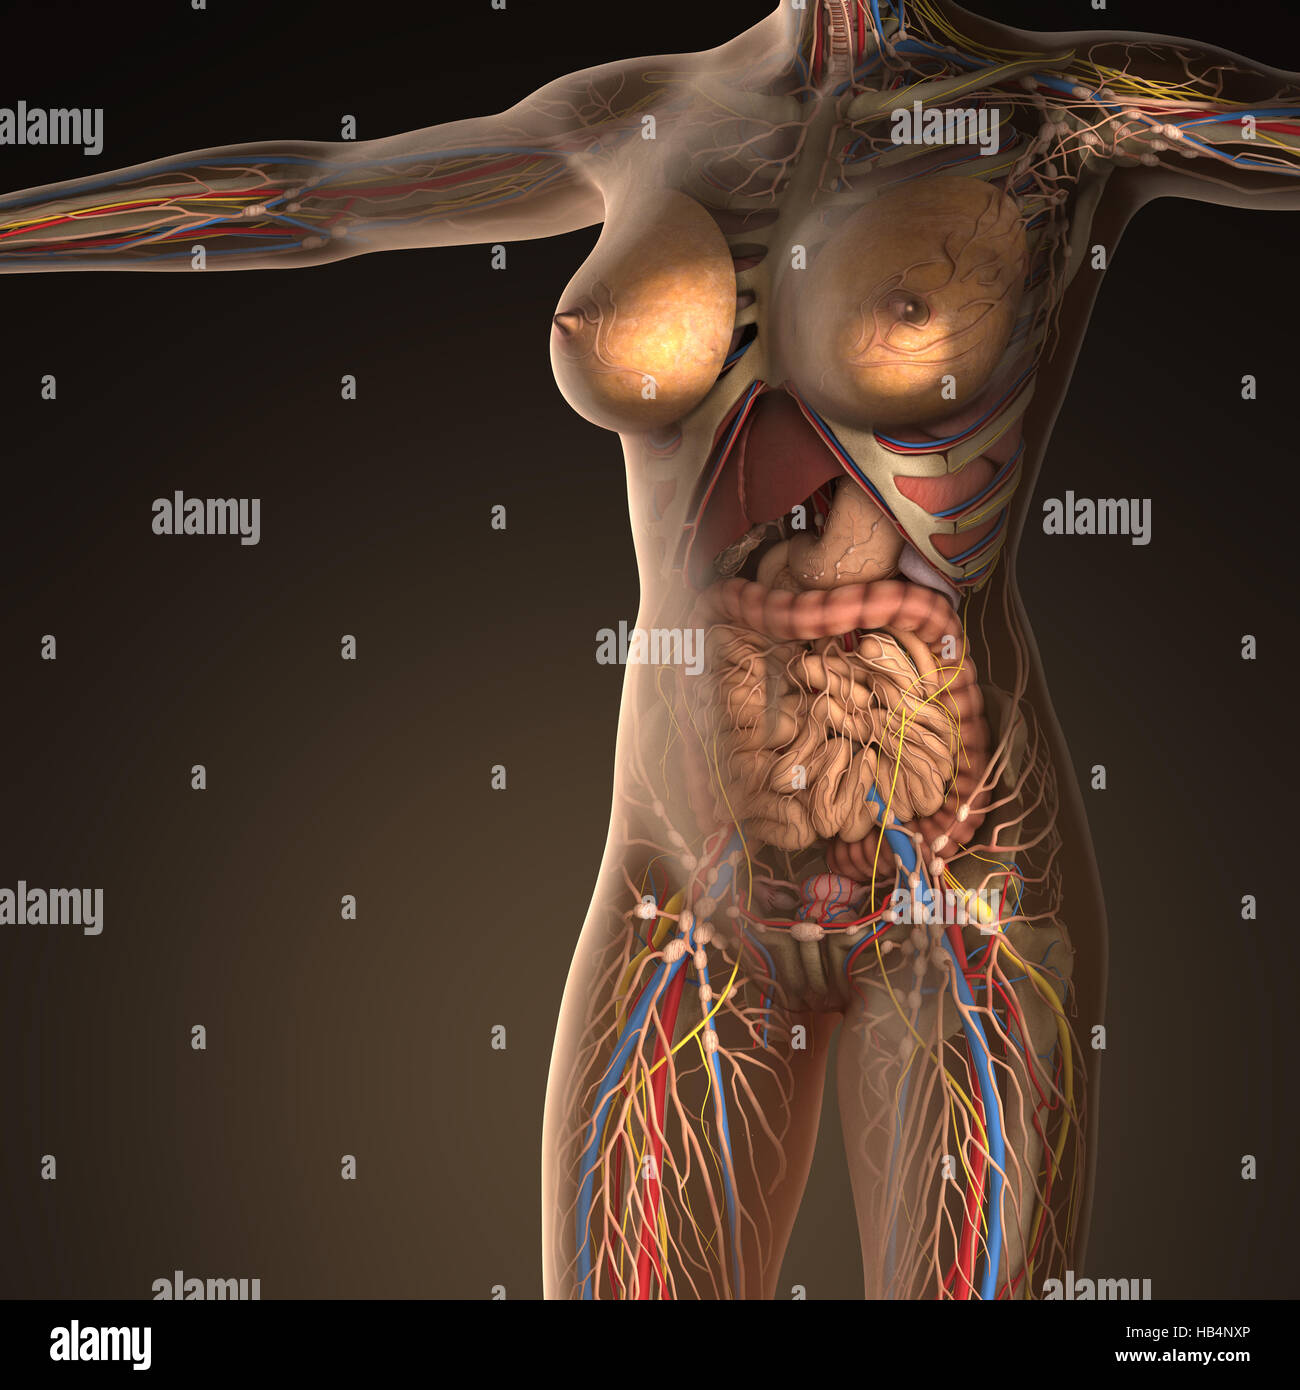 Anatomy Of Human Organs With Bones In Transparent Body Stock Photo